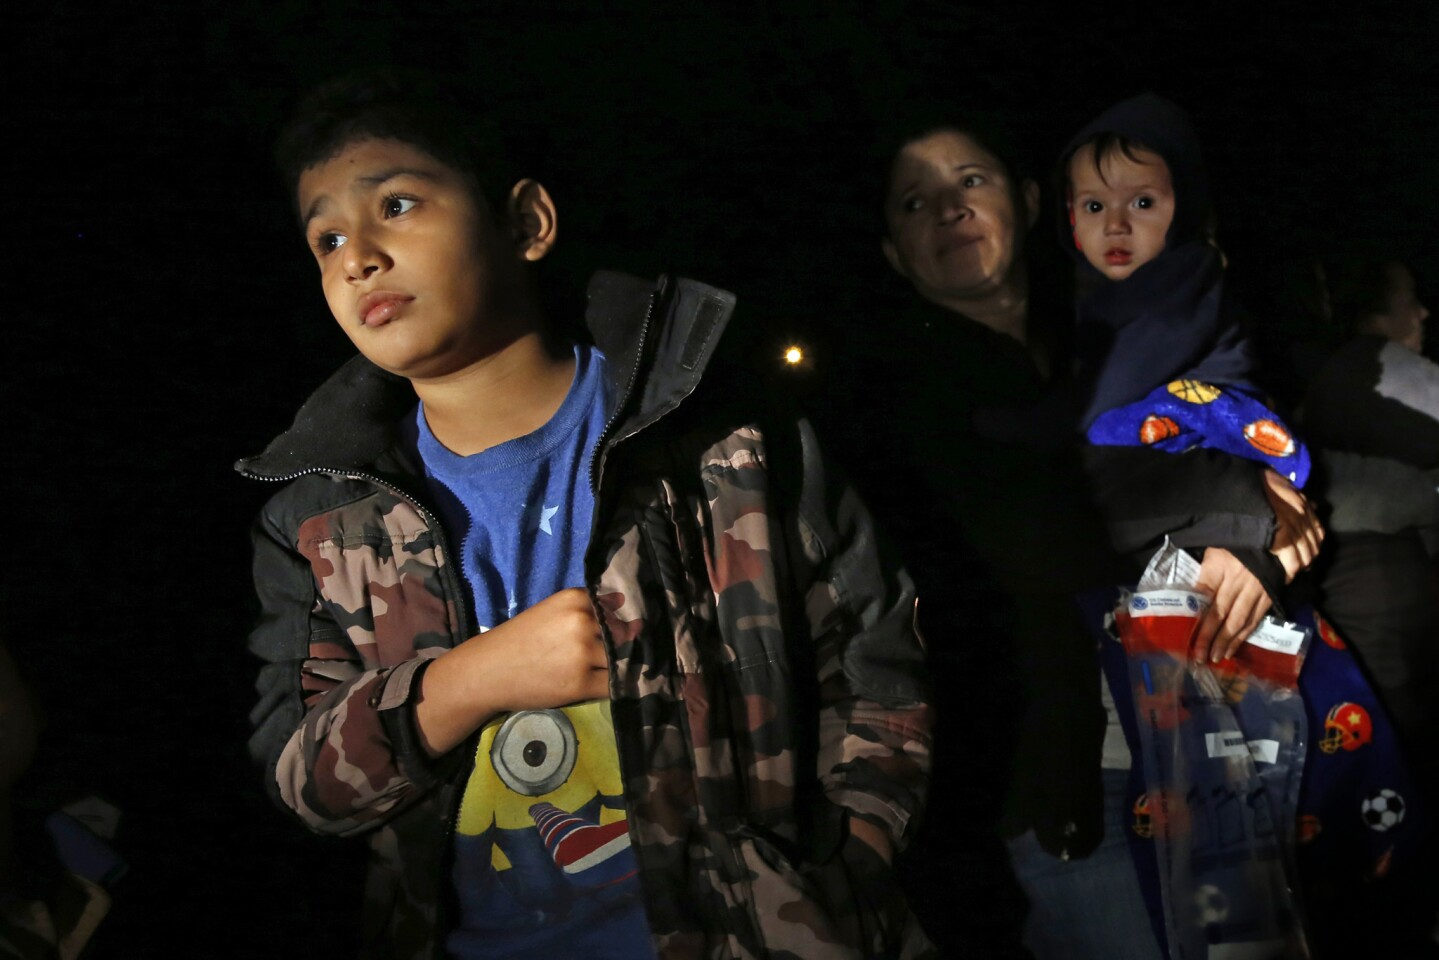 After crossing the Rio Grande River at night with the help of smugglers, women and children from Central America are detained by U.S. Border Patrol agents.